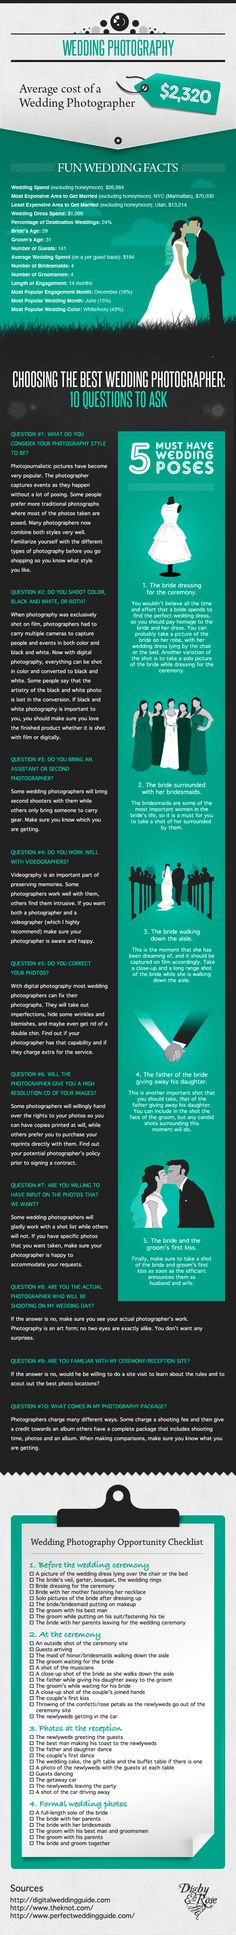 wedding photography infographic, including a checklist of shots